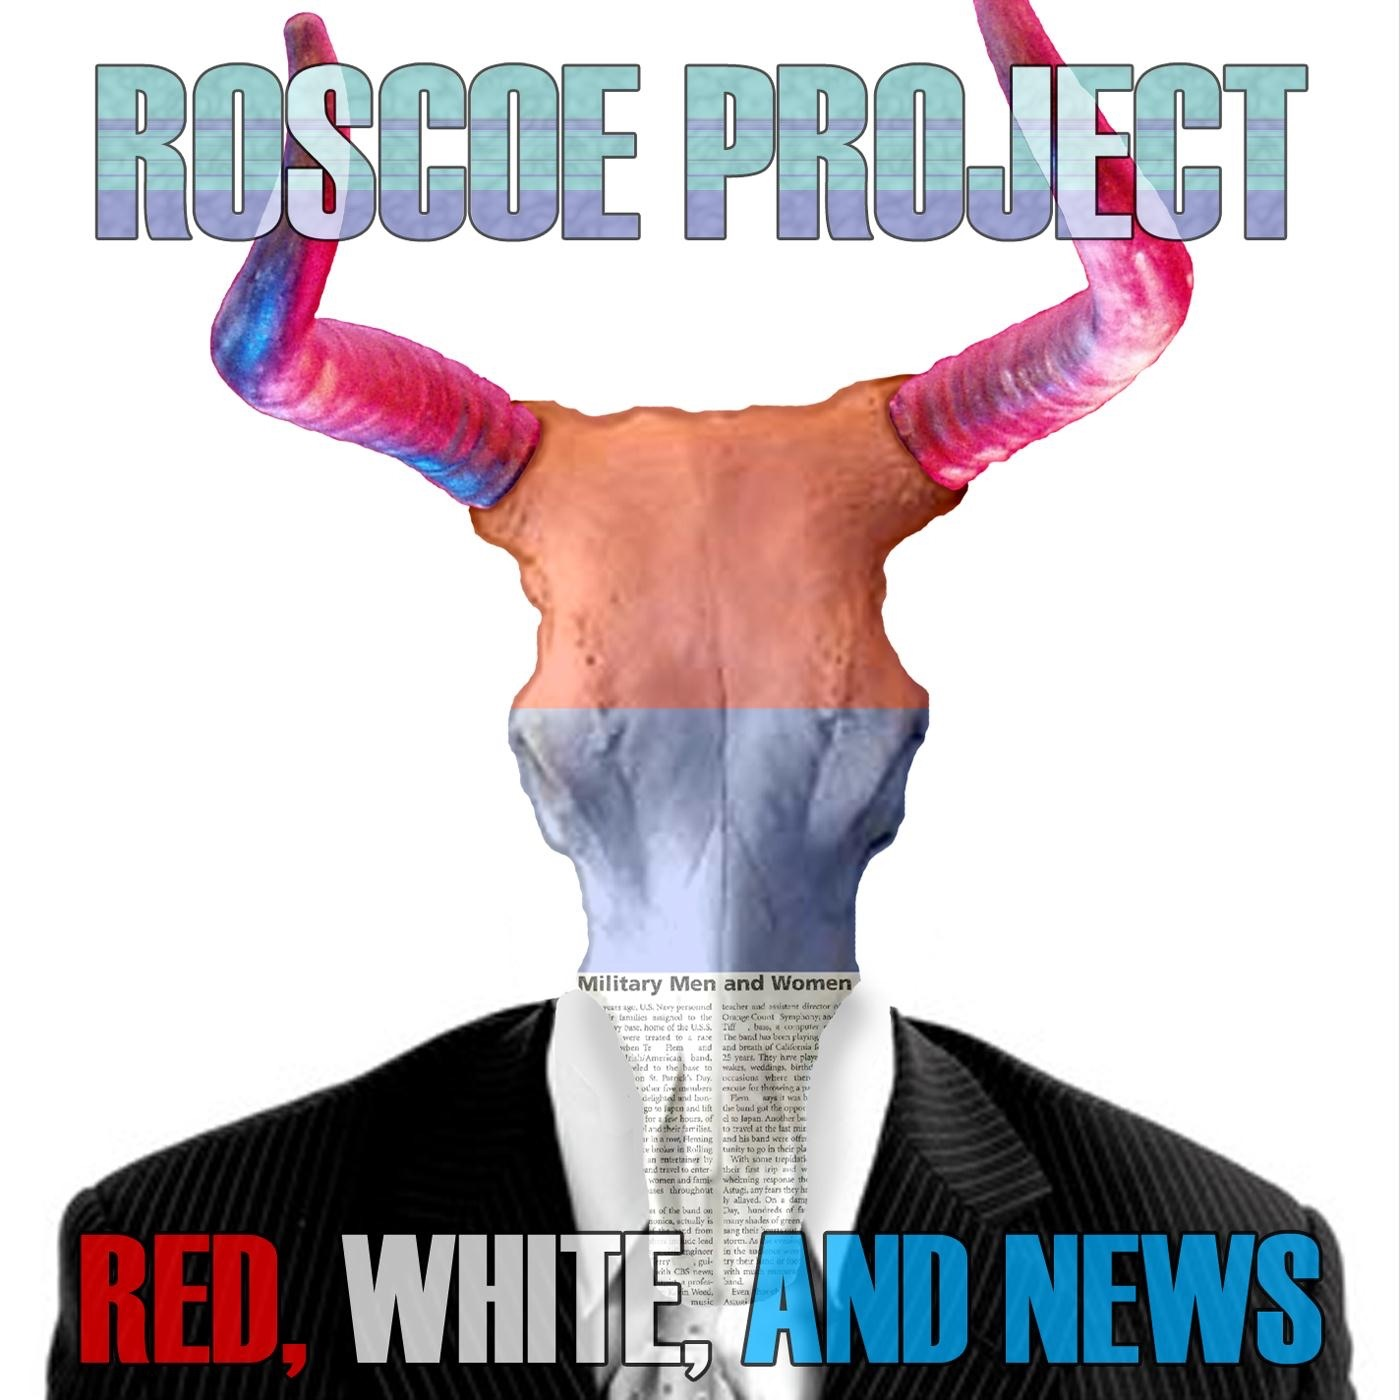 Red, White and News